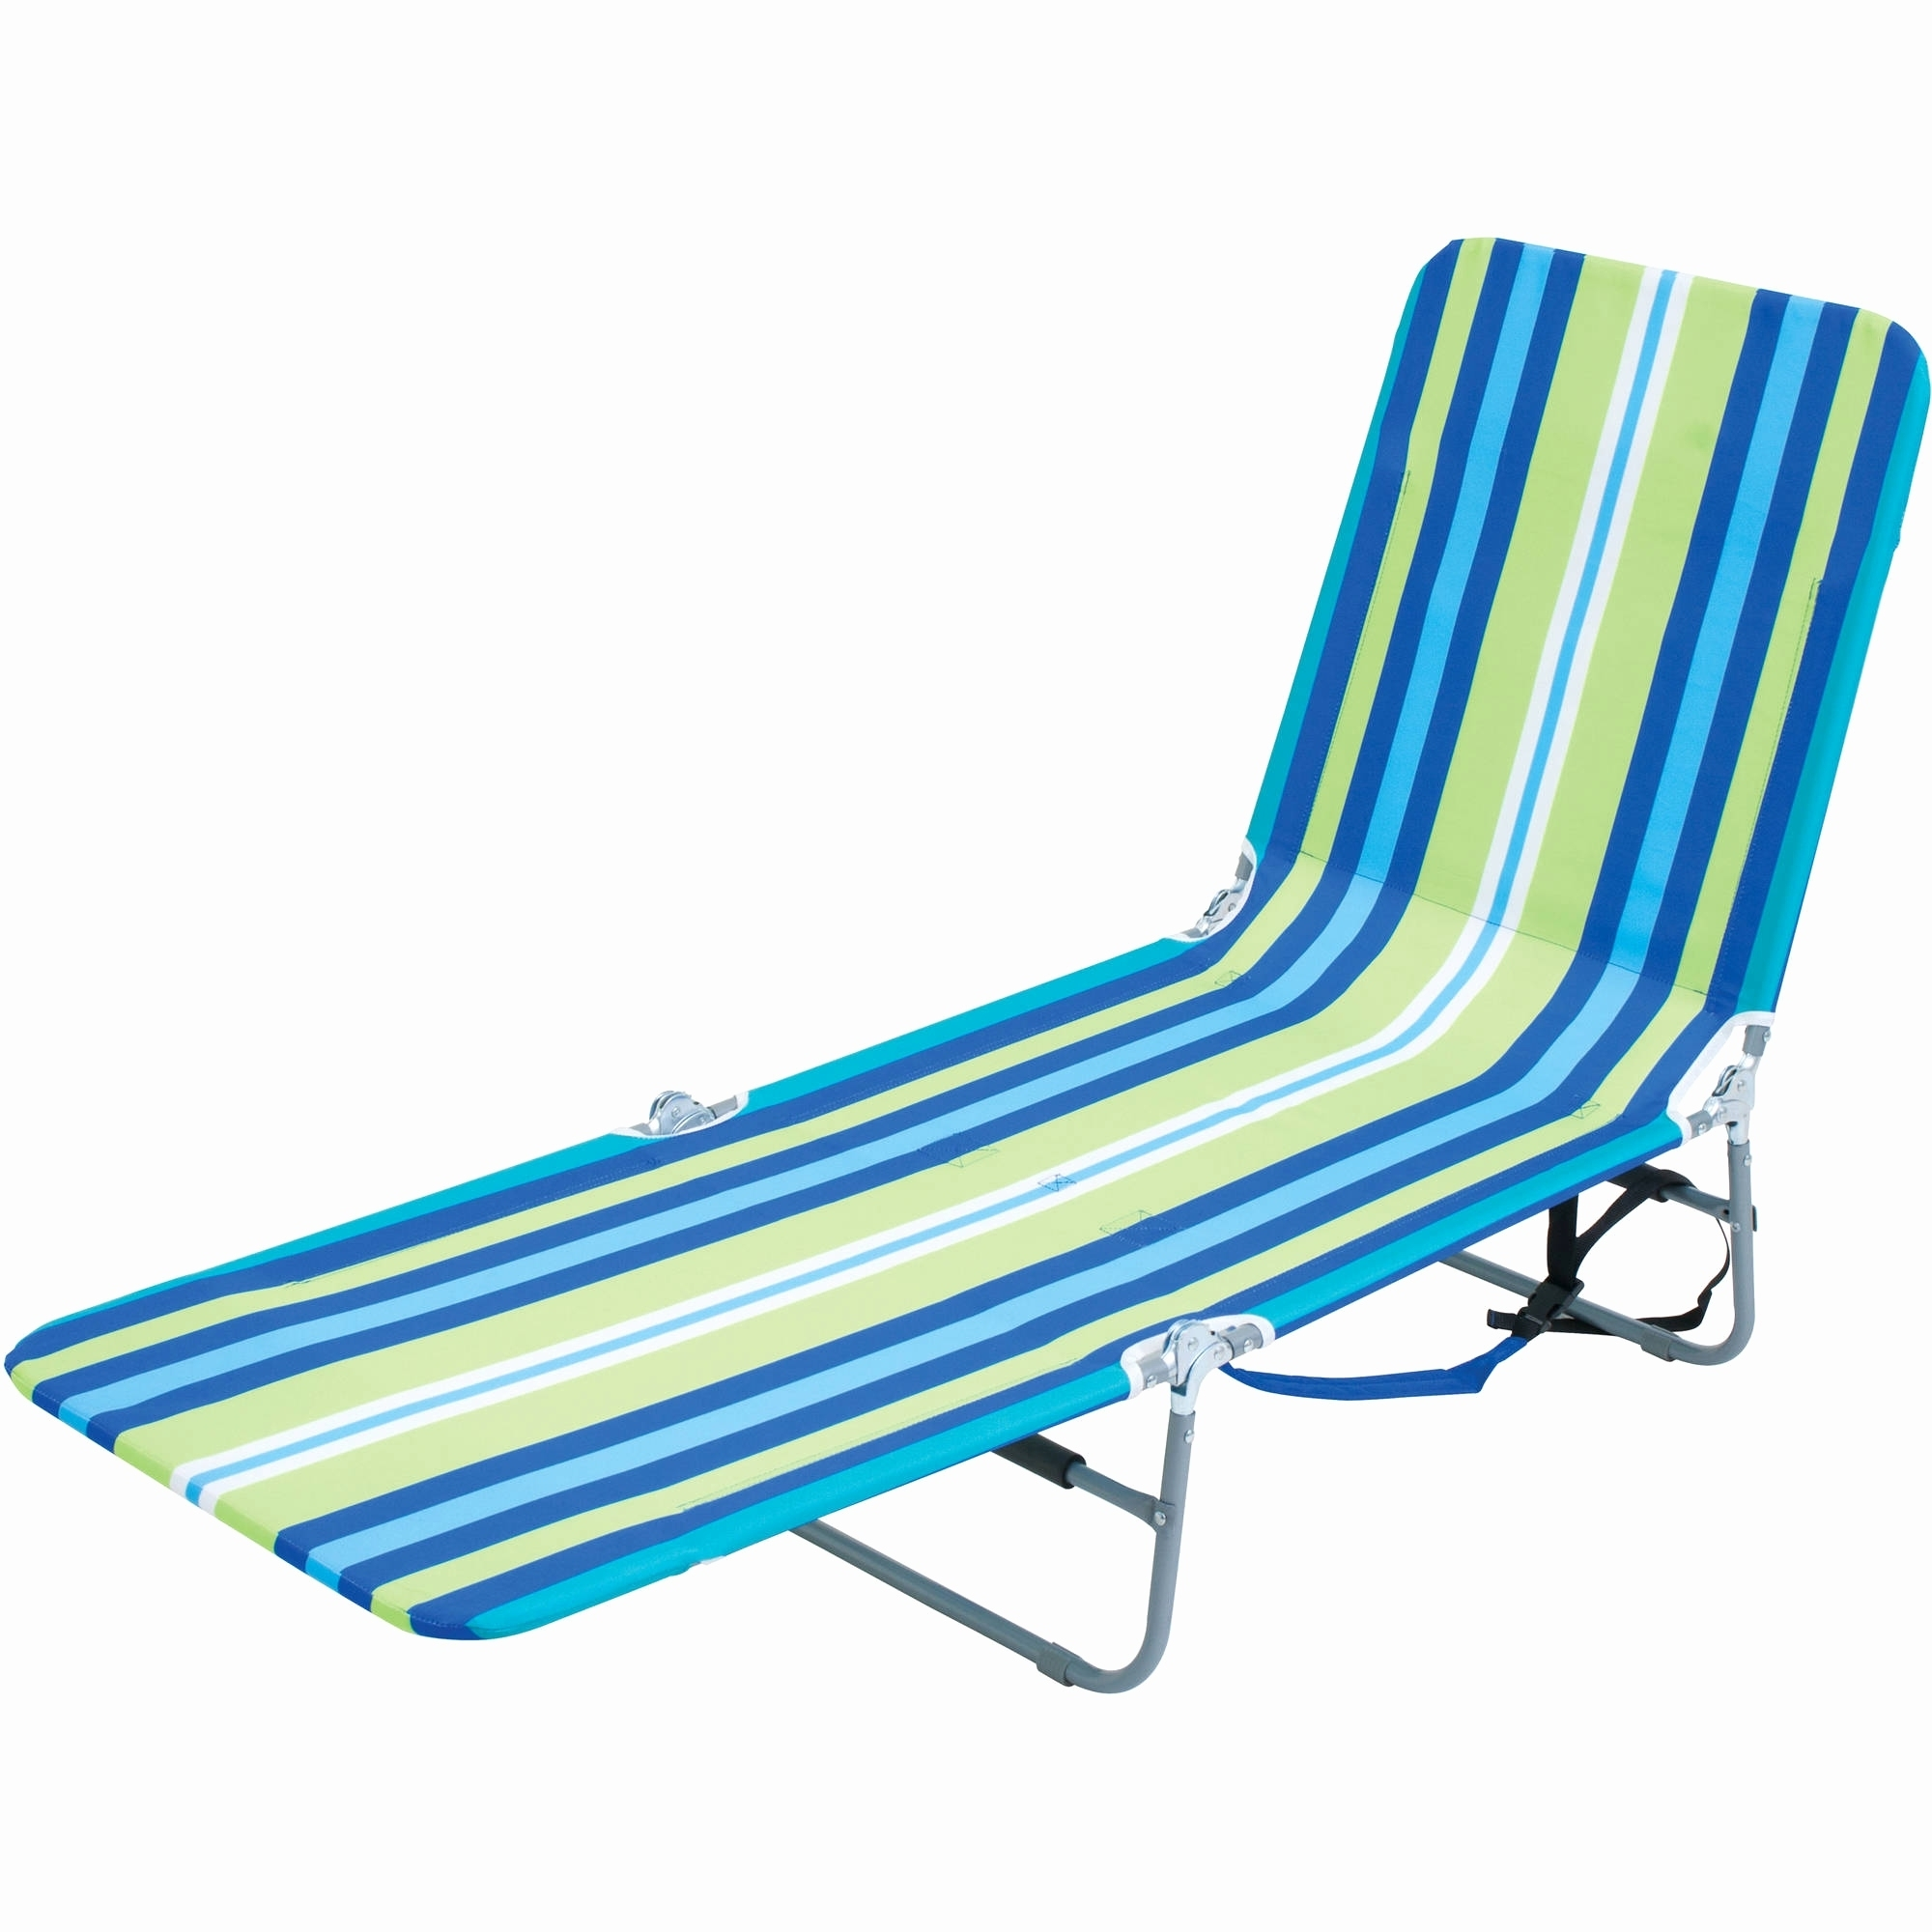 Chaise Lounge Chairs At Walmart Within Best And Newest Picture 10 Of 30 – Outdoor Lounge Chairs Walmart Inspirational (View 15 of 15)